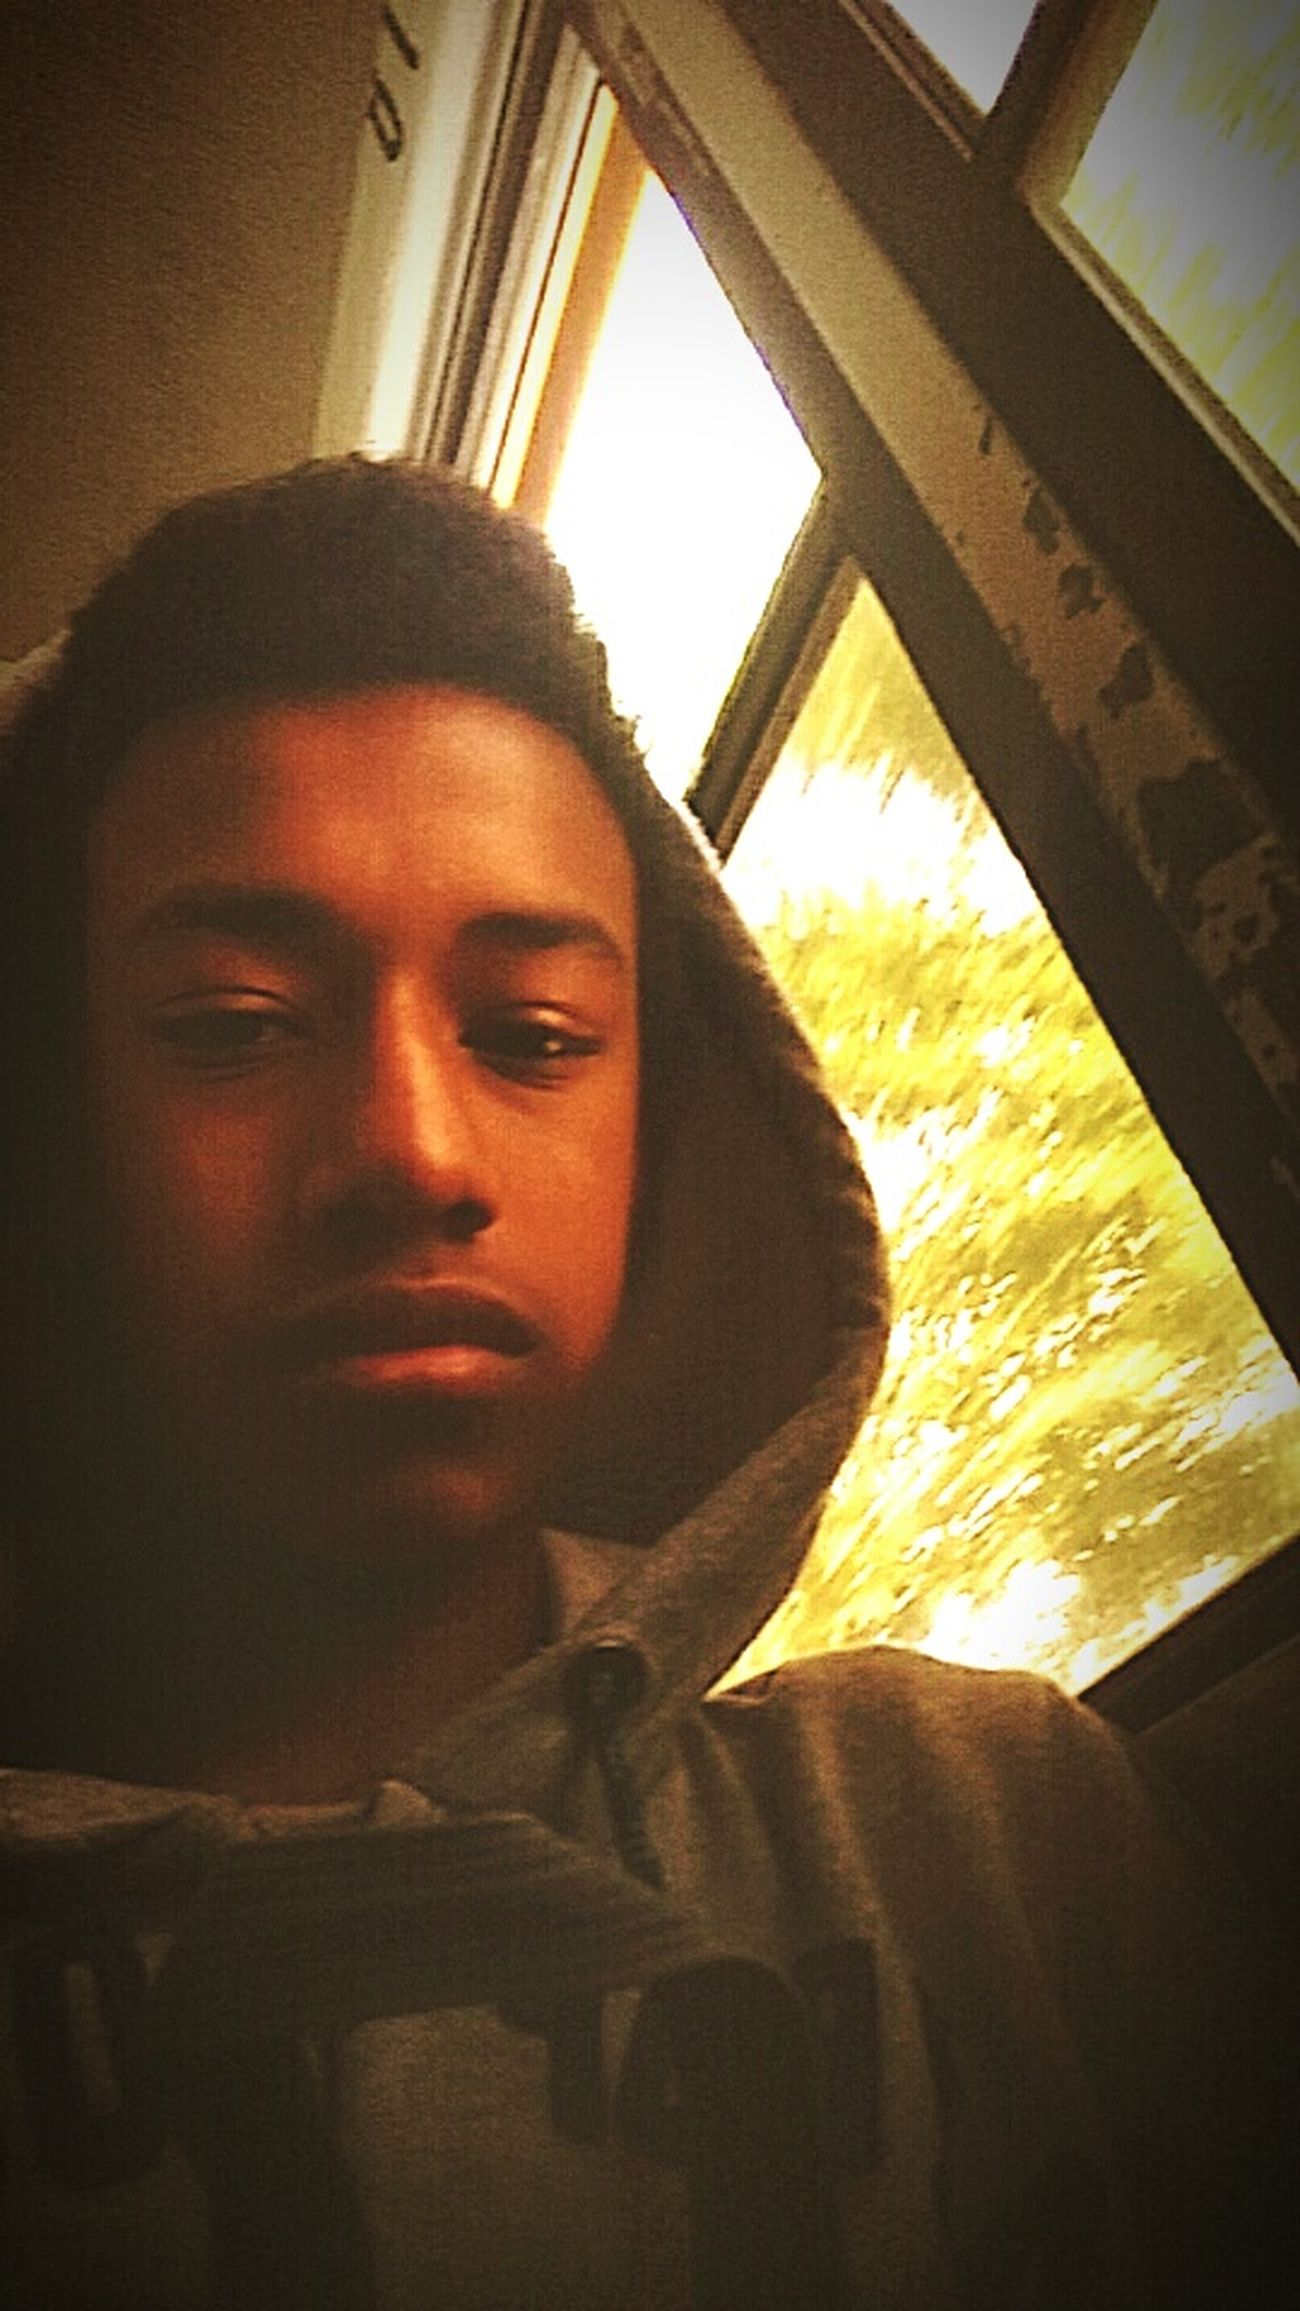 On a school bus bored AF😪 First Eyeem Photo